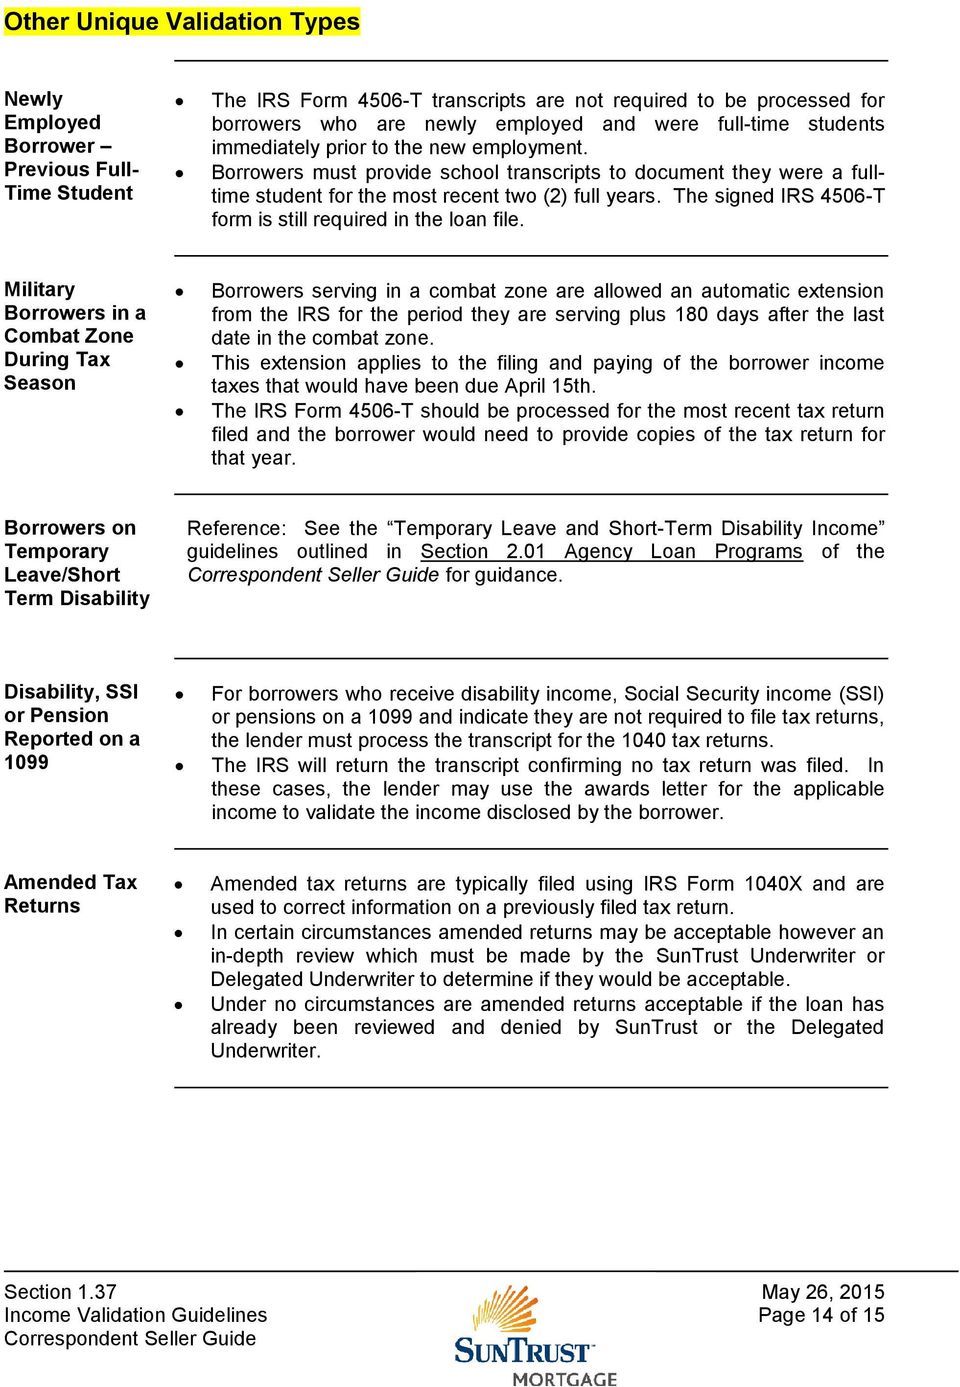 Section 1 37 Income Validation Guidelines - PDF